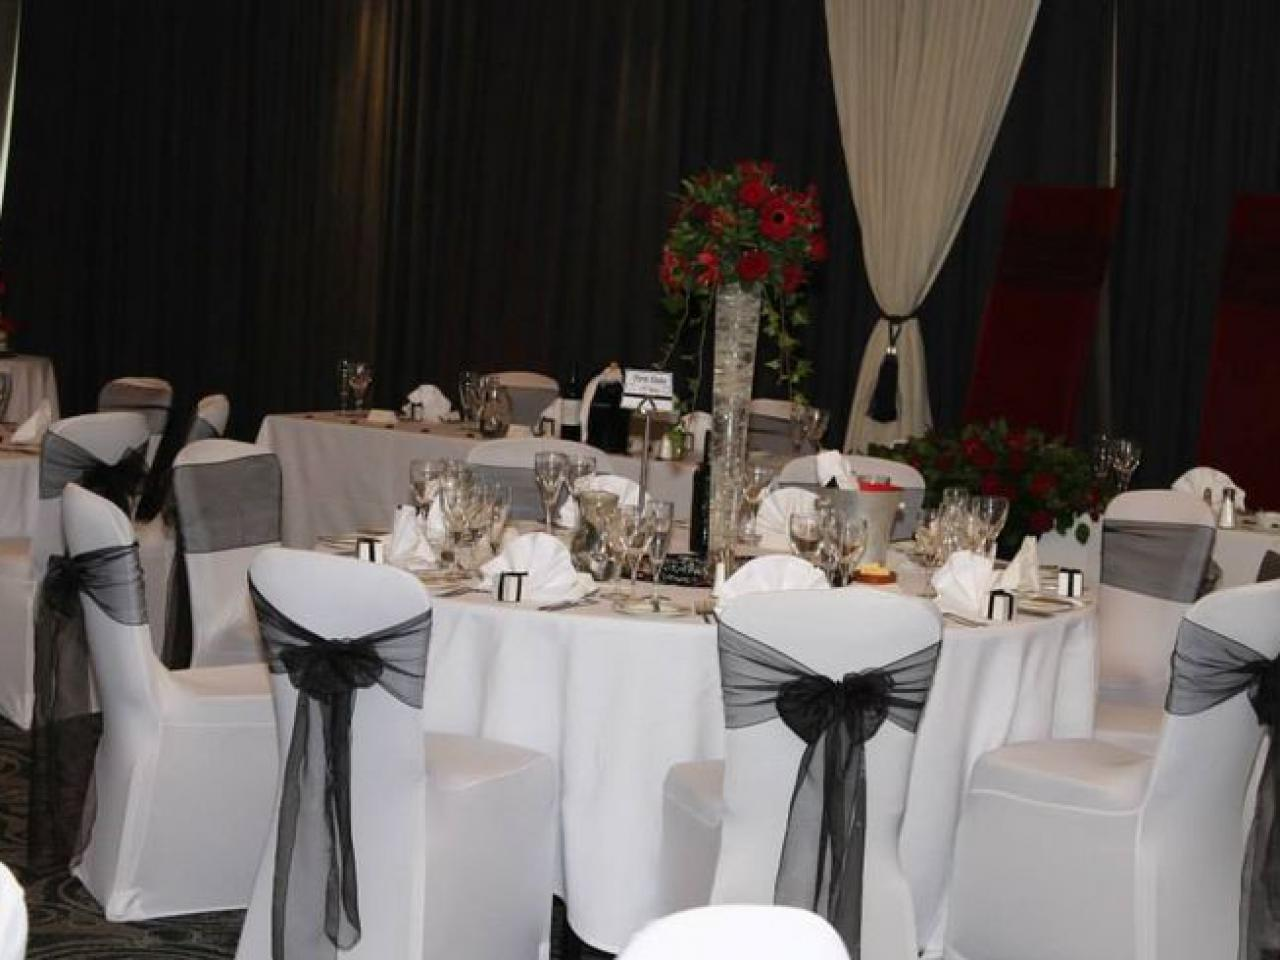 Slough Hotel Wedding Venue Gallery | The Pinewood Hotel Buckinghamshire